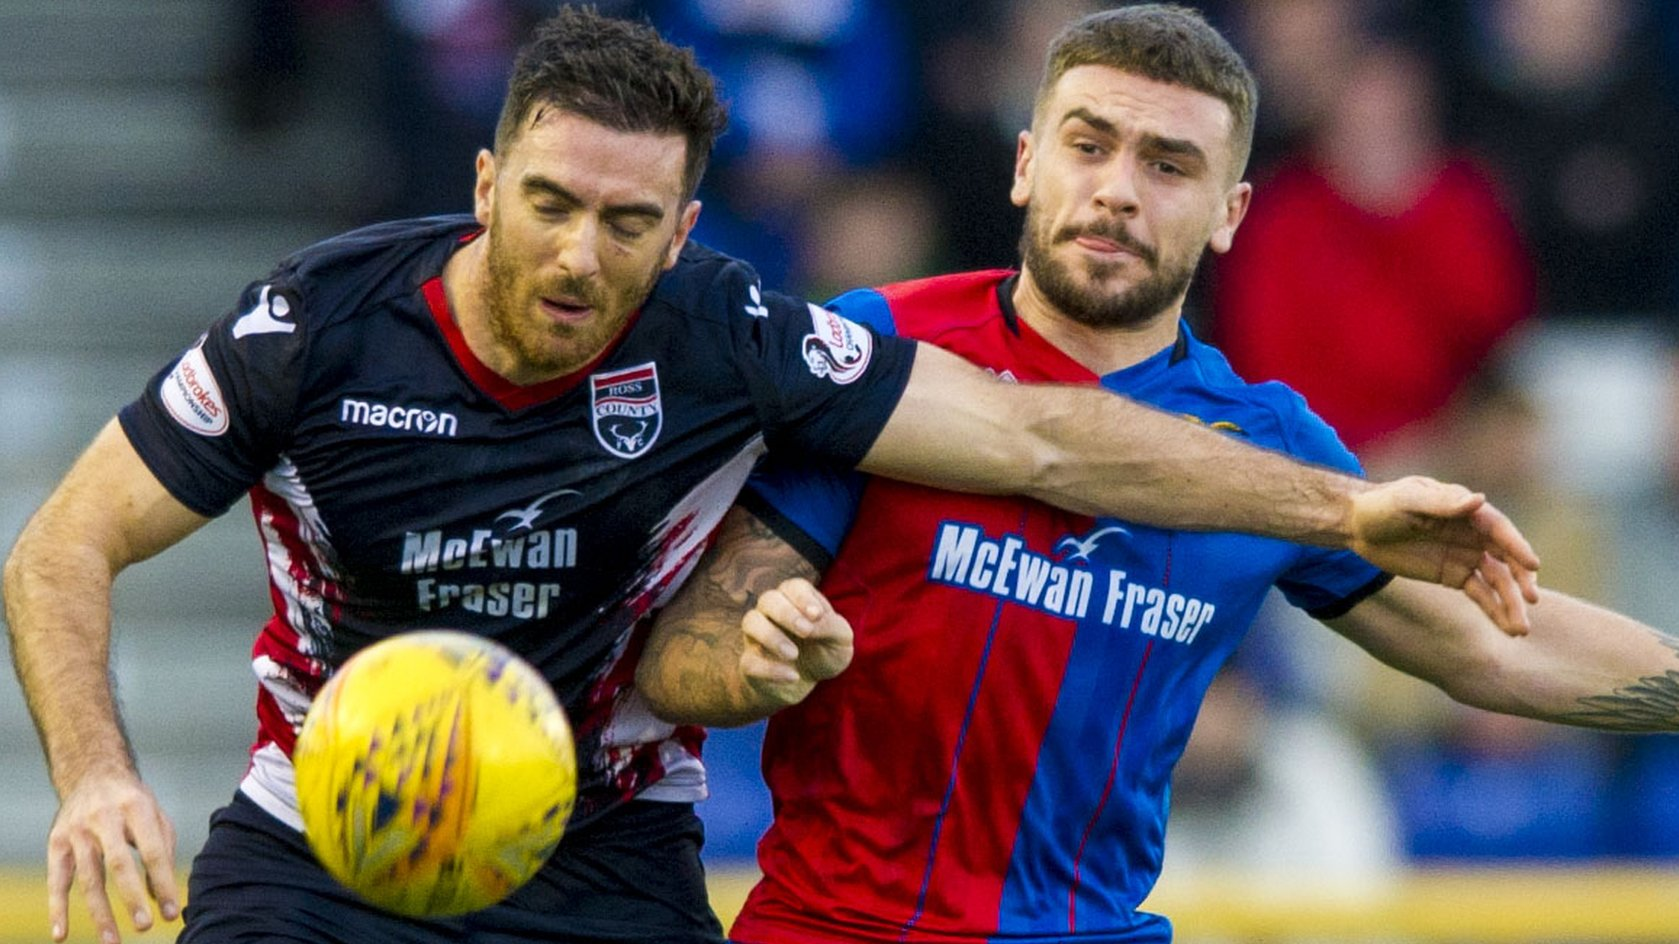 Inverness CT 2-2 Ross County: Long-range stunner & controversy in derby draw